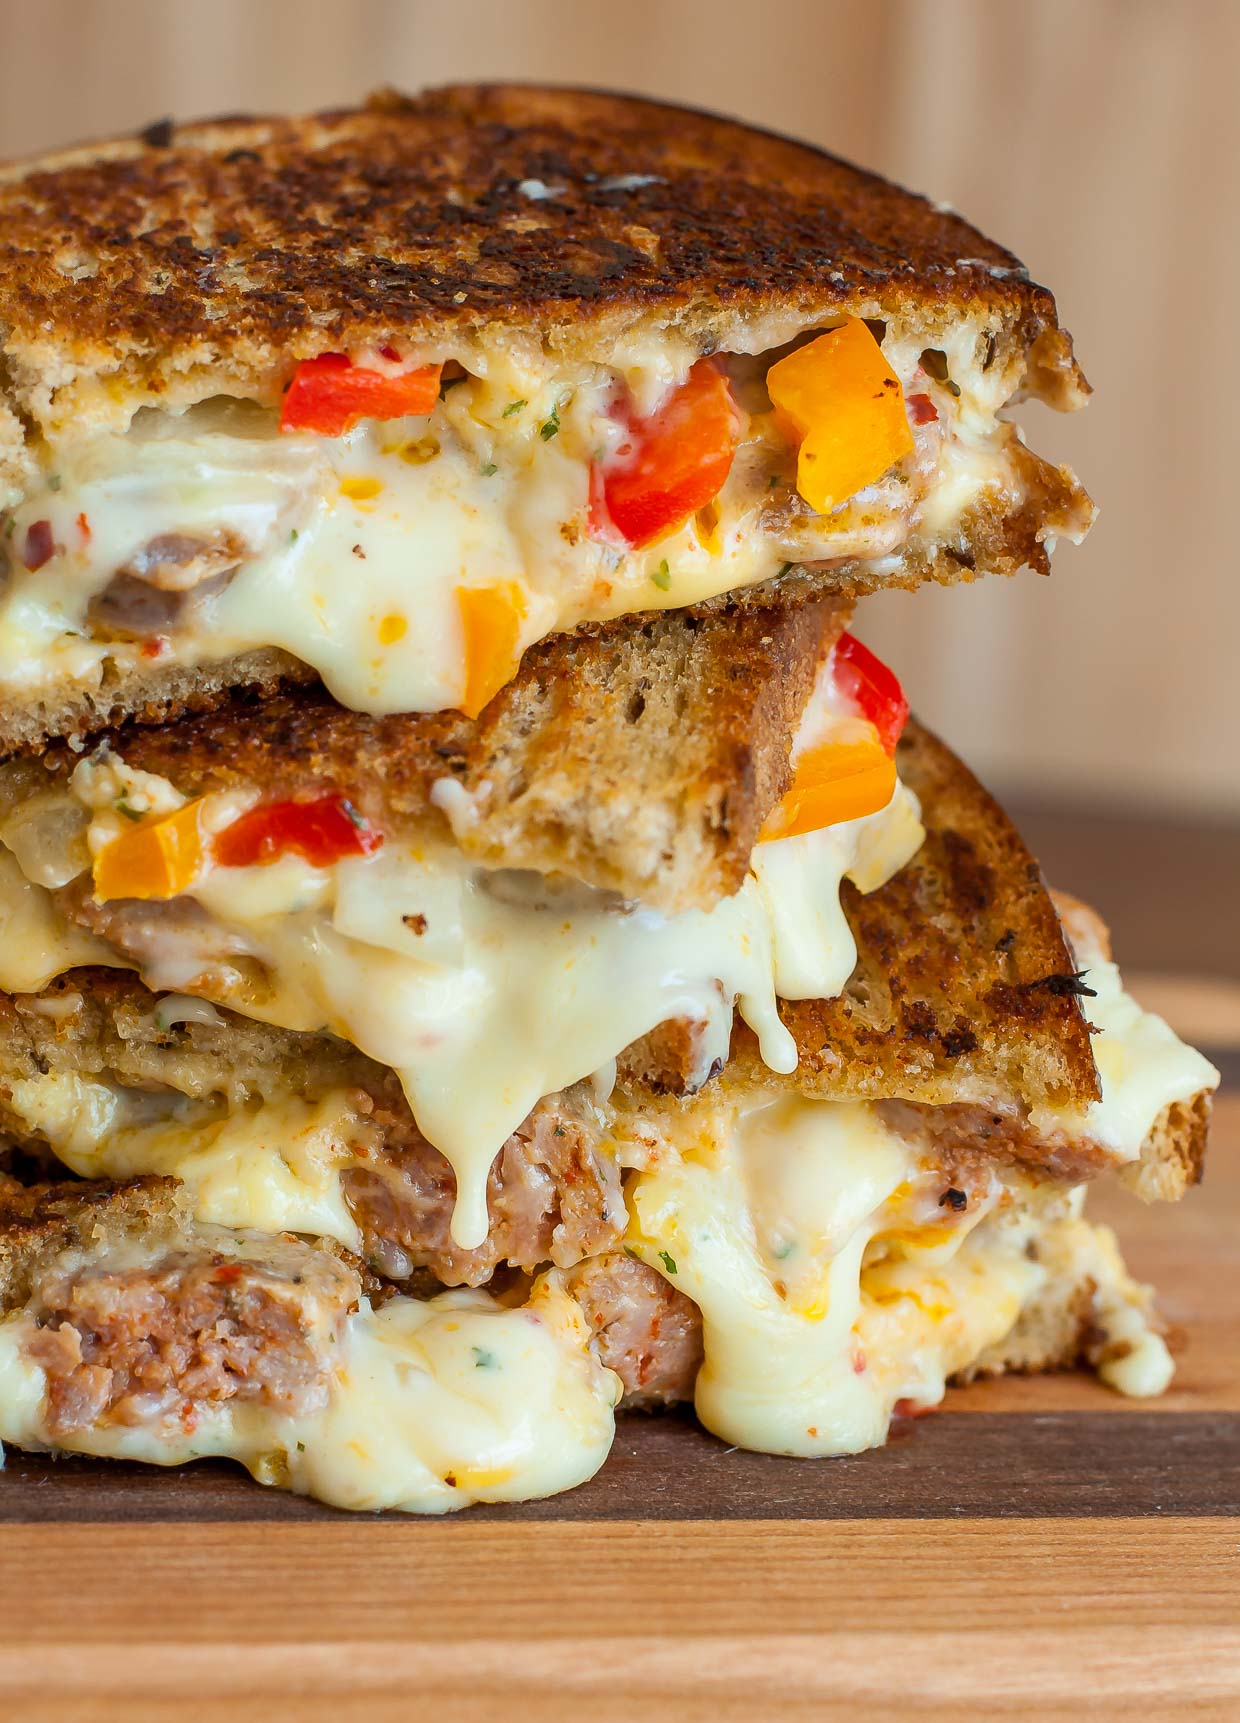 Sausage and Pepper Chipotle Grilled Cheese: tasty sausage and peppers packed into the cheesiest, meltiest grilled cheese ever! It's the best!